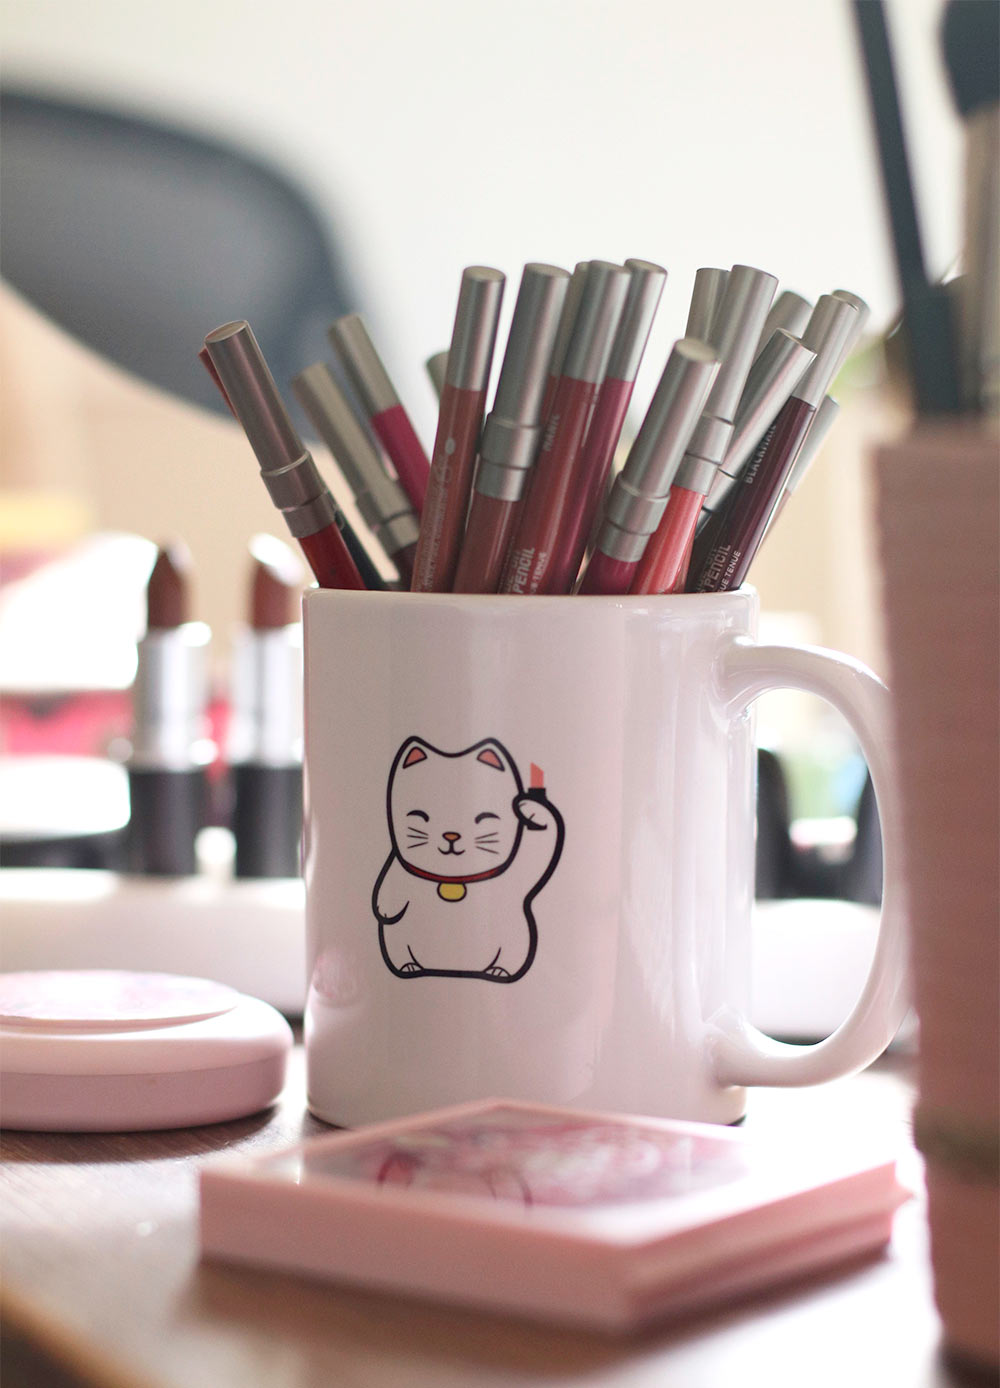 lucky cat mug connor claire store